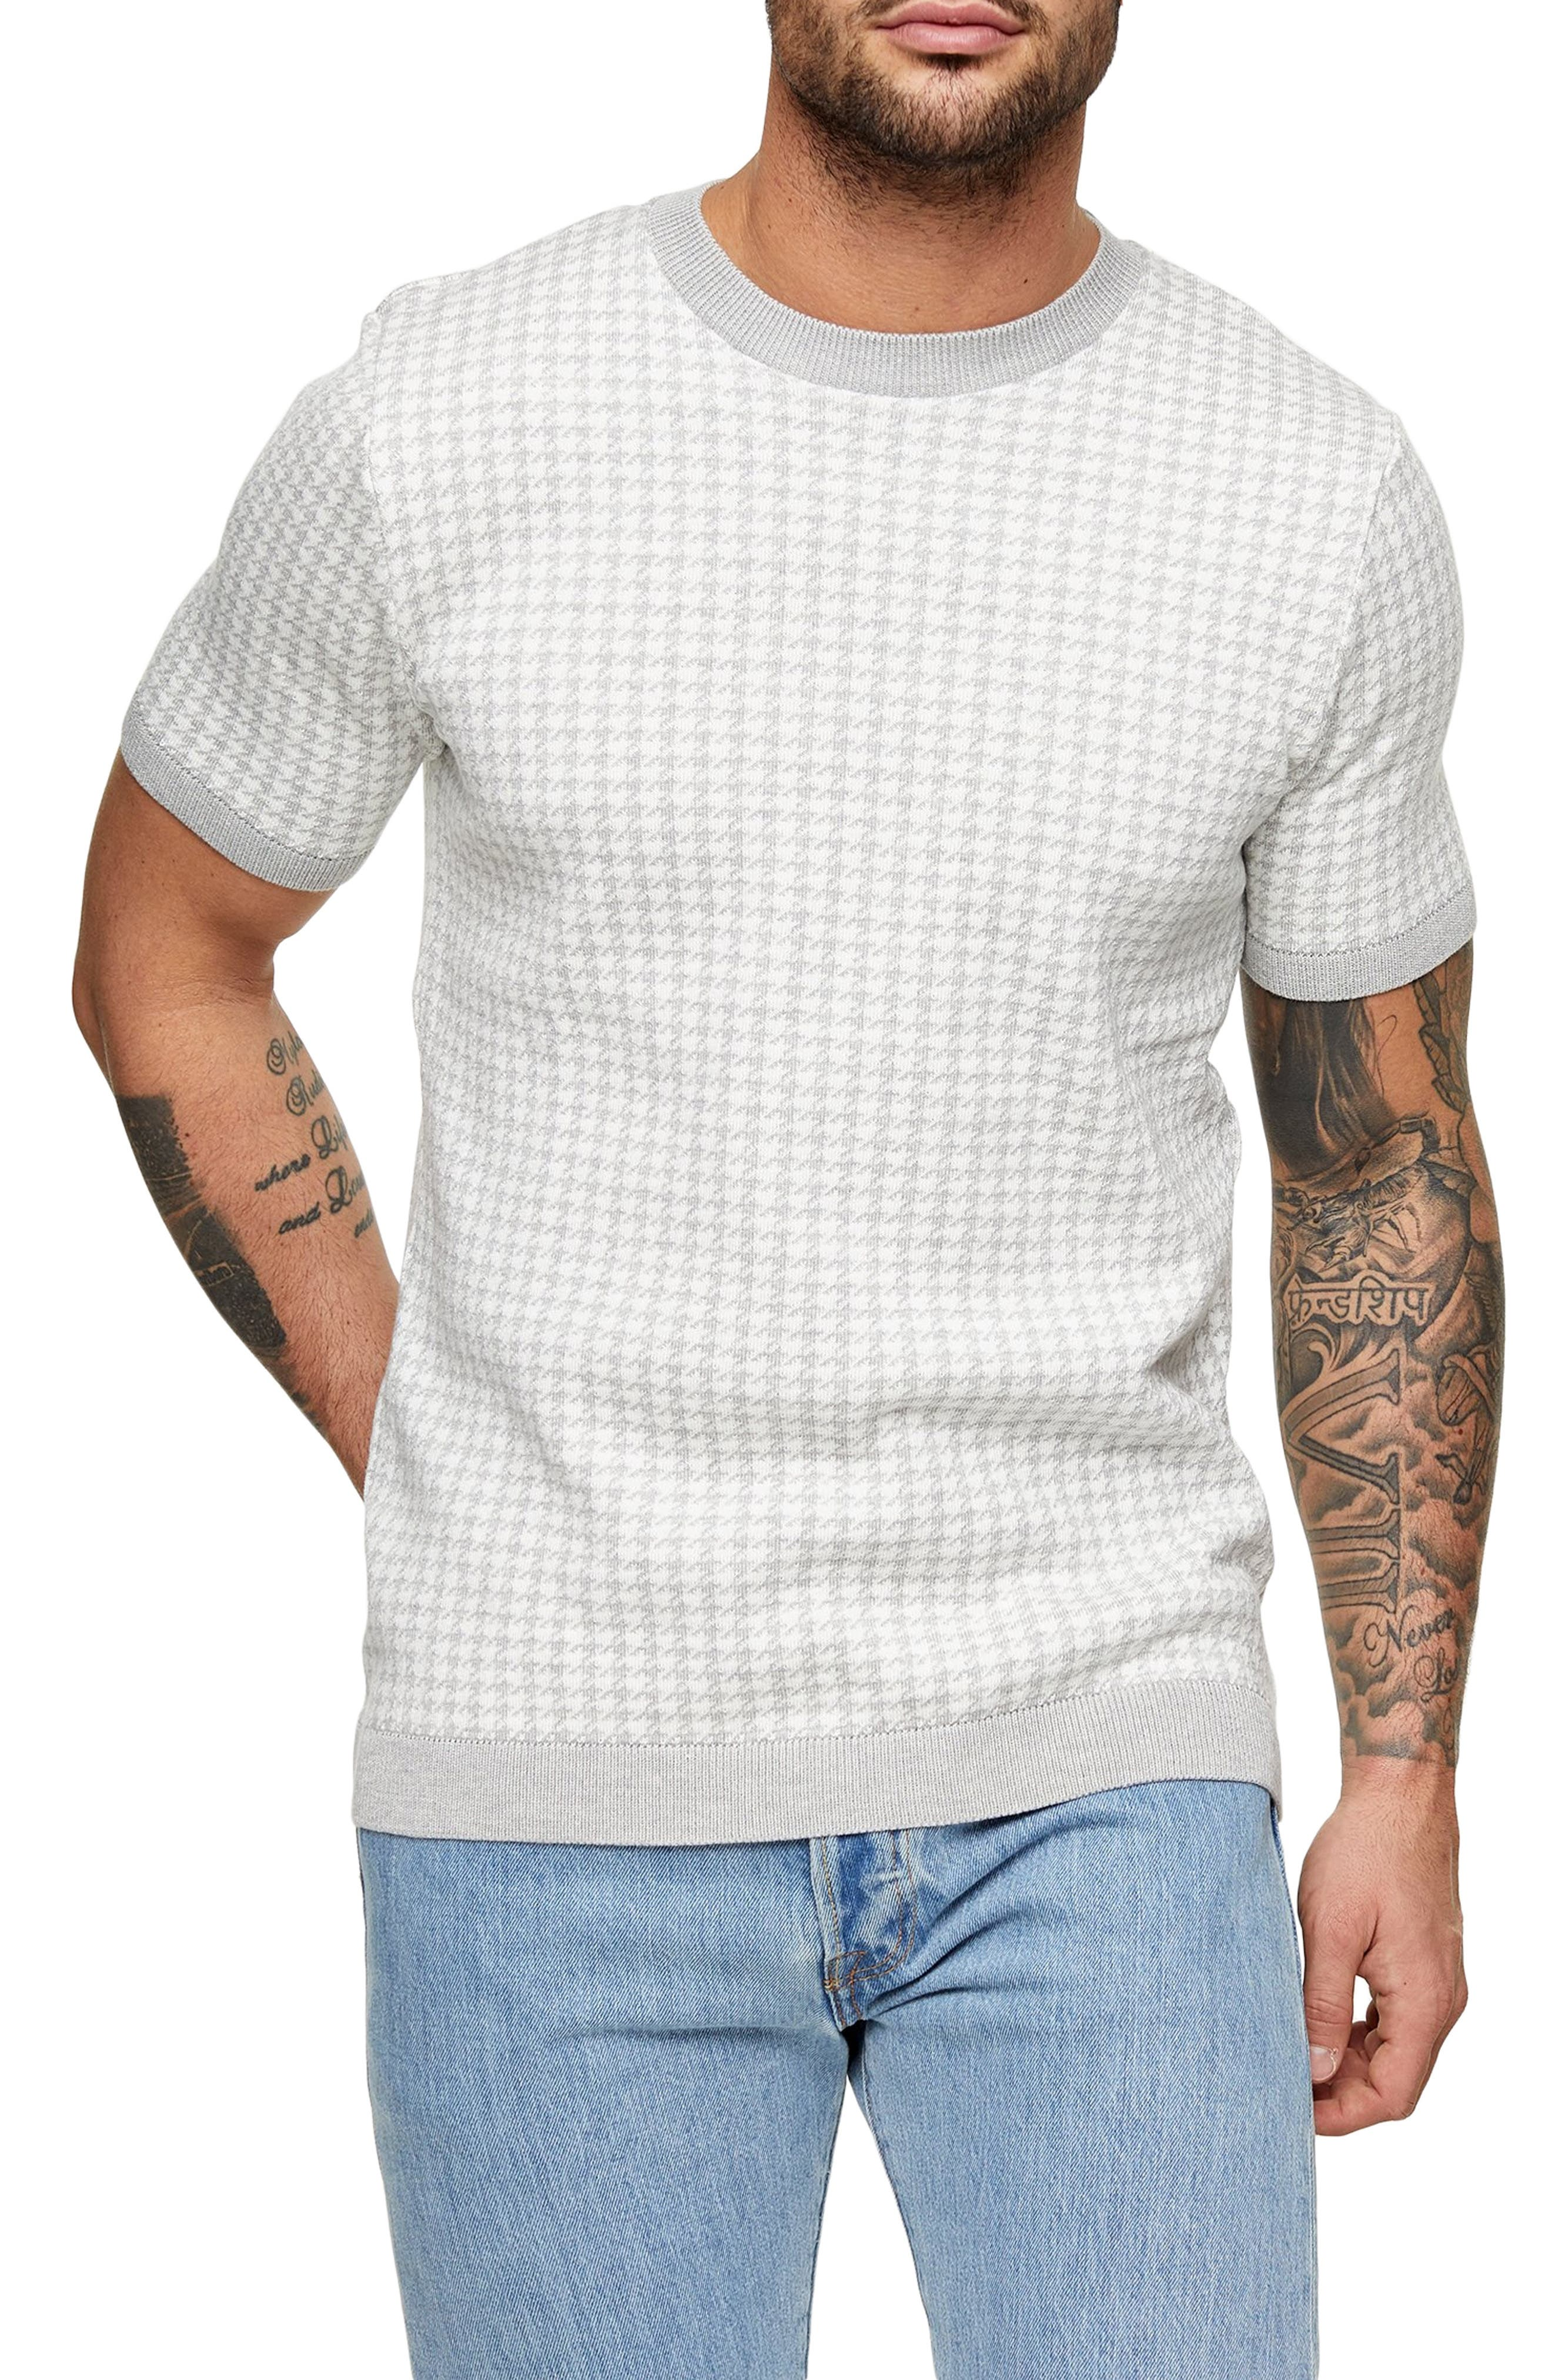 A houndstooth pattern makes this short-sleeve sweater a suave, stylish standout. Style Name: Topman Houndstooth Short Sleeve Sweater. Style Number: 6051474. Available in stores.